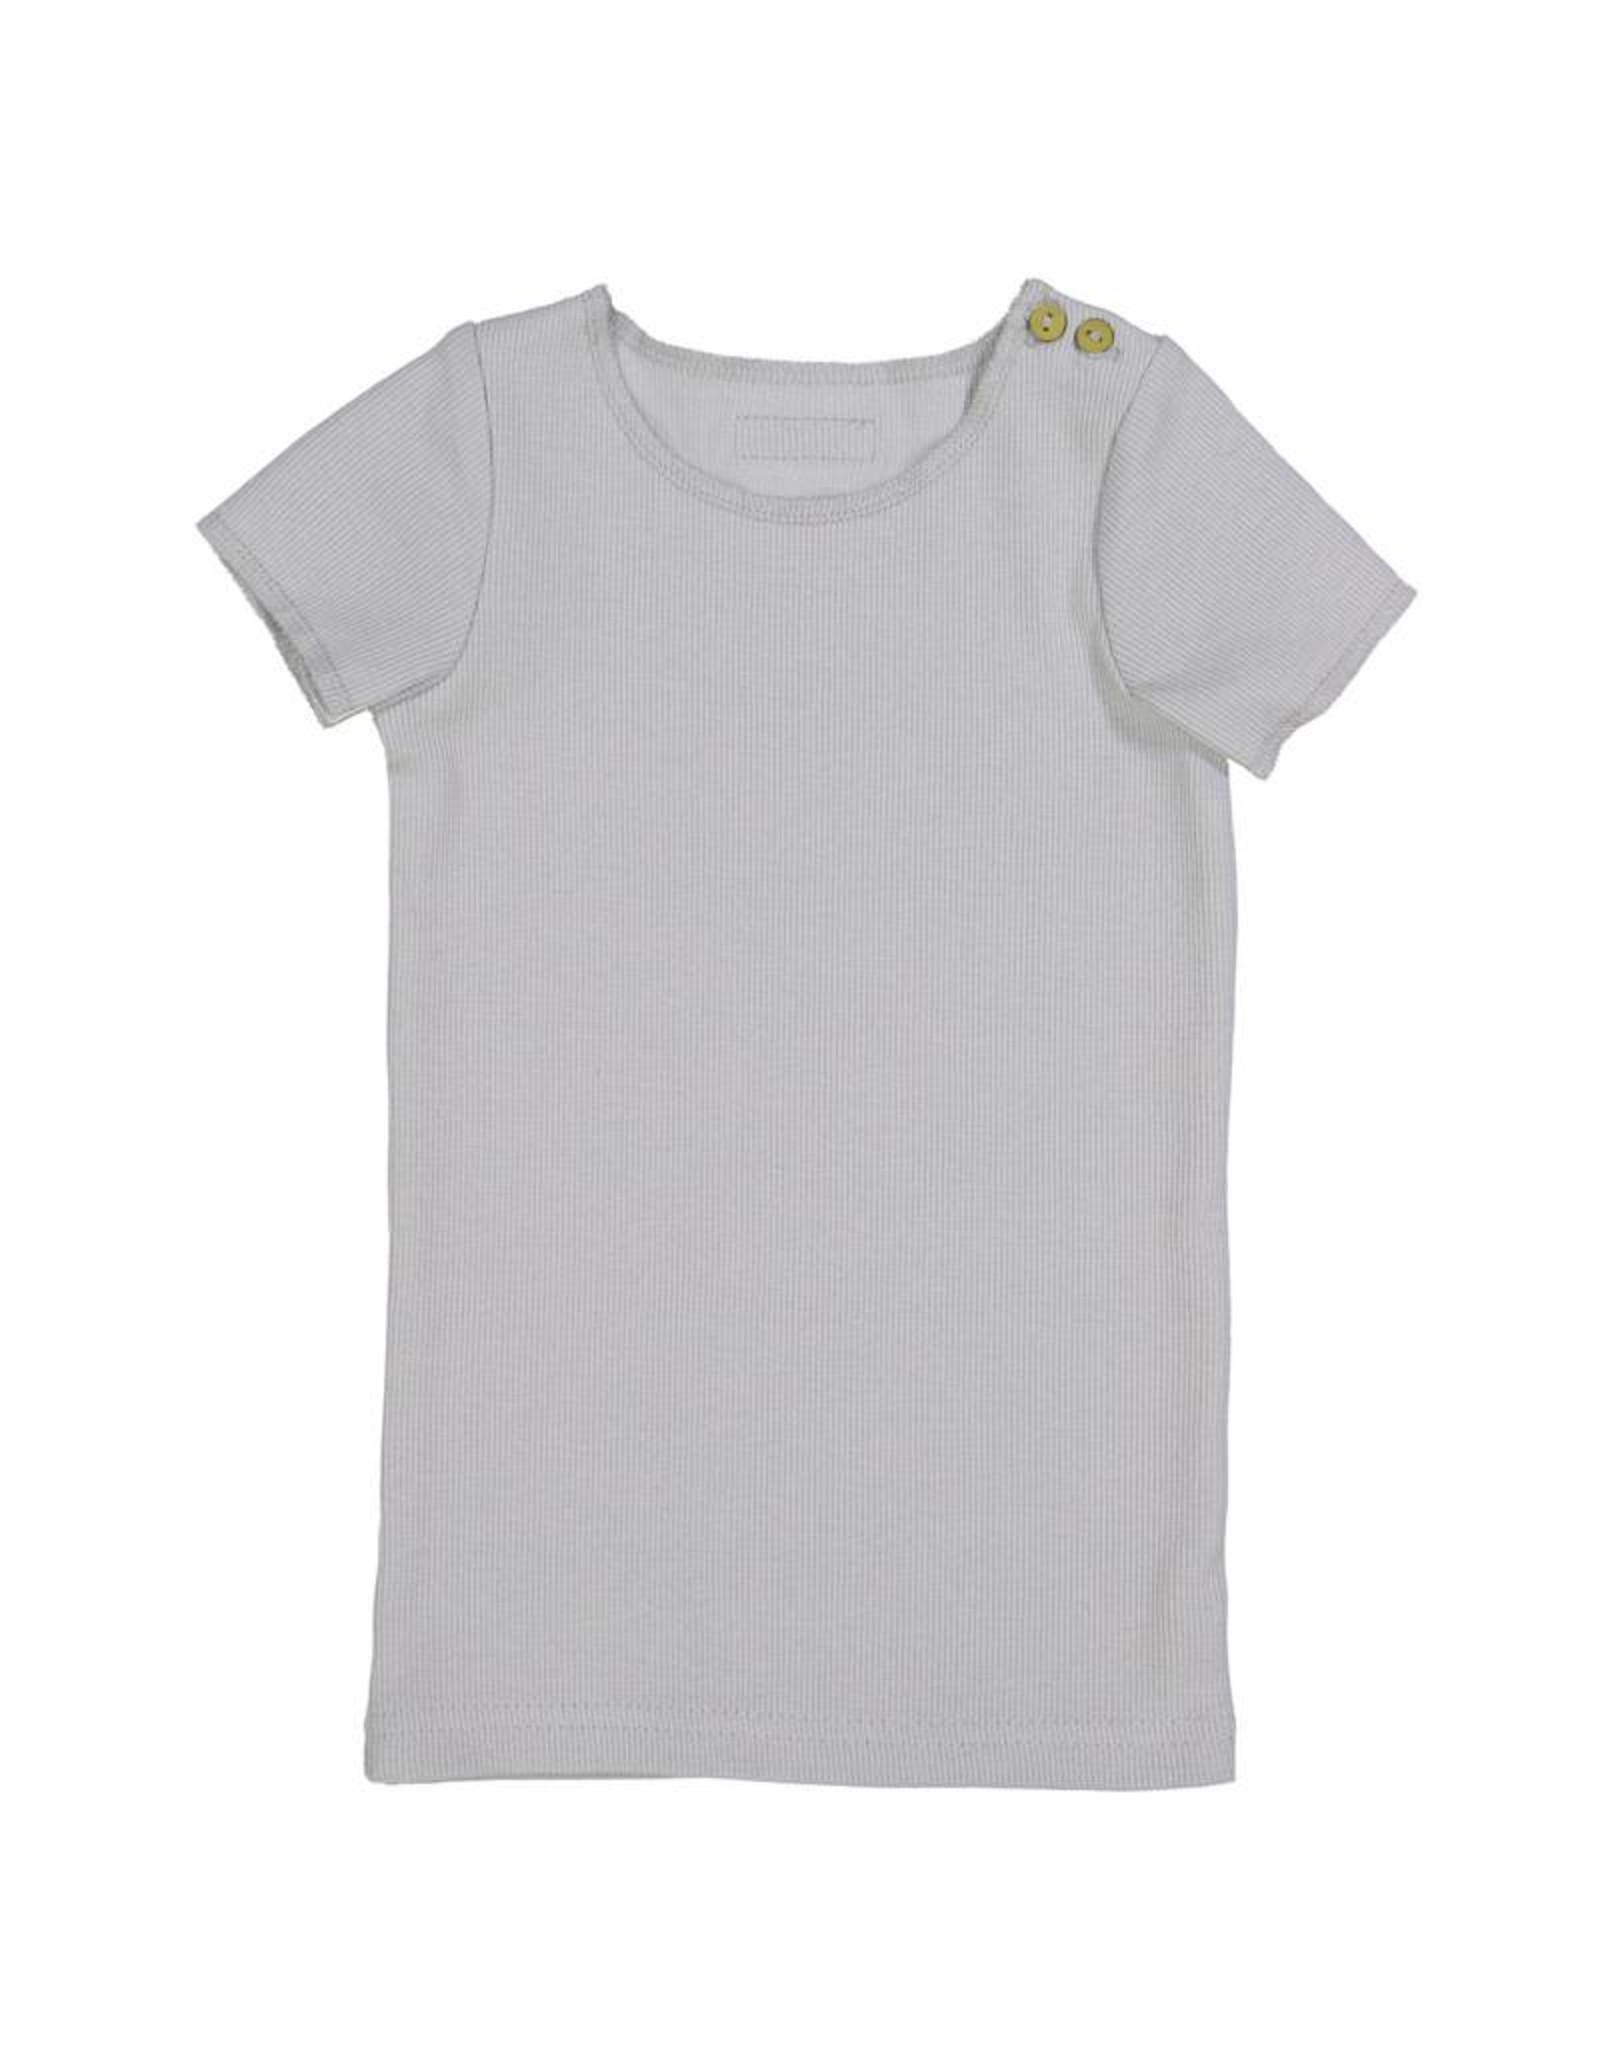 LIL LEGS Lil Legs SS19 Ribbed Tee Basic Colors